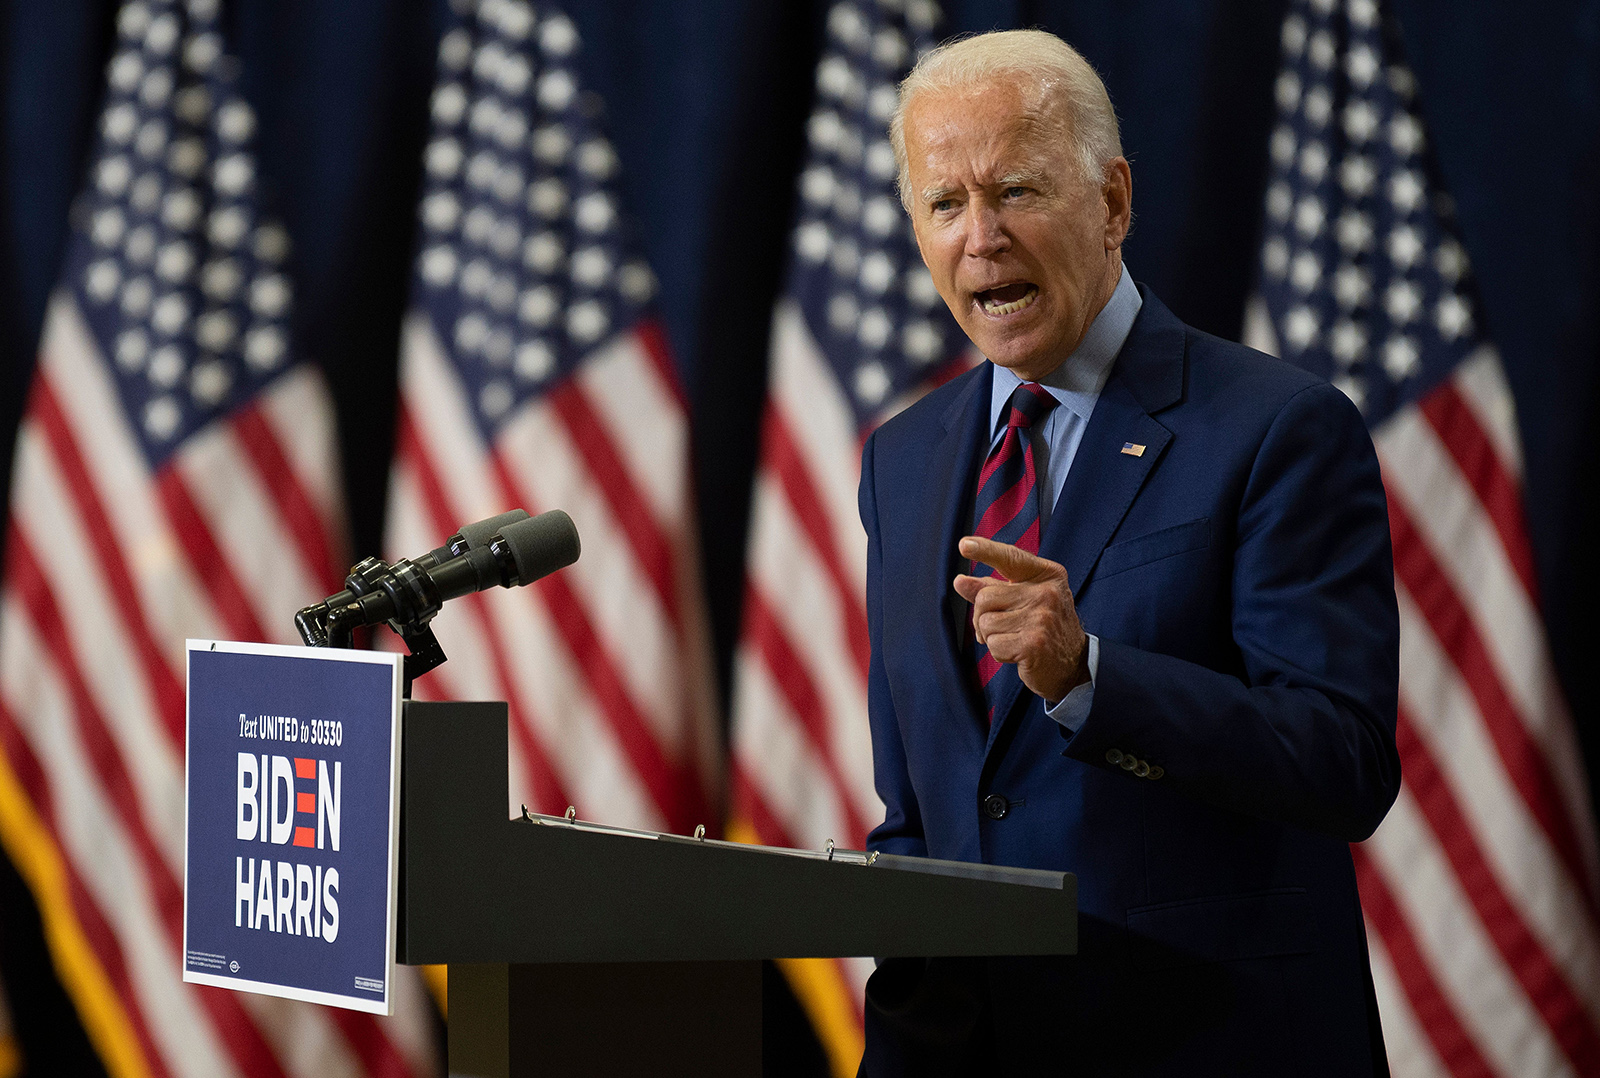 Democratic presidential candidate and former Vice President Joe Biden speaks on the state of the US economy on September 4, in Wilmington, Delaware.